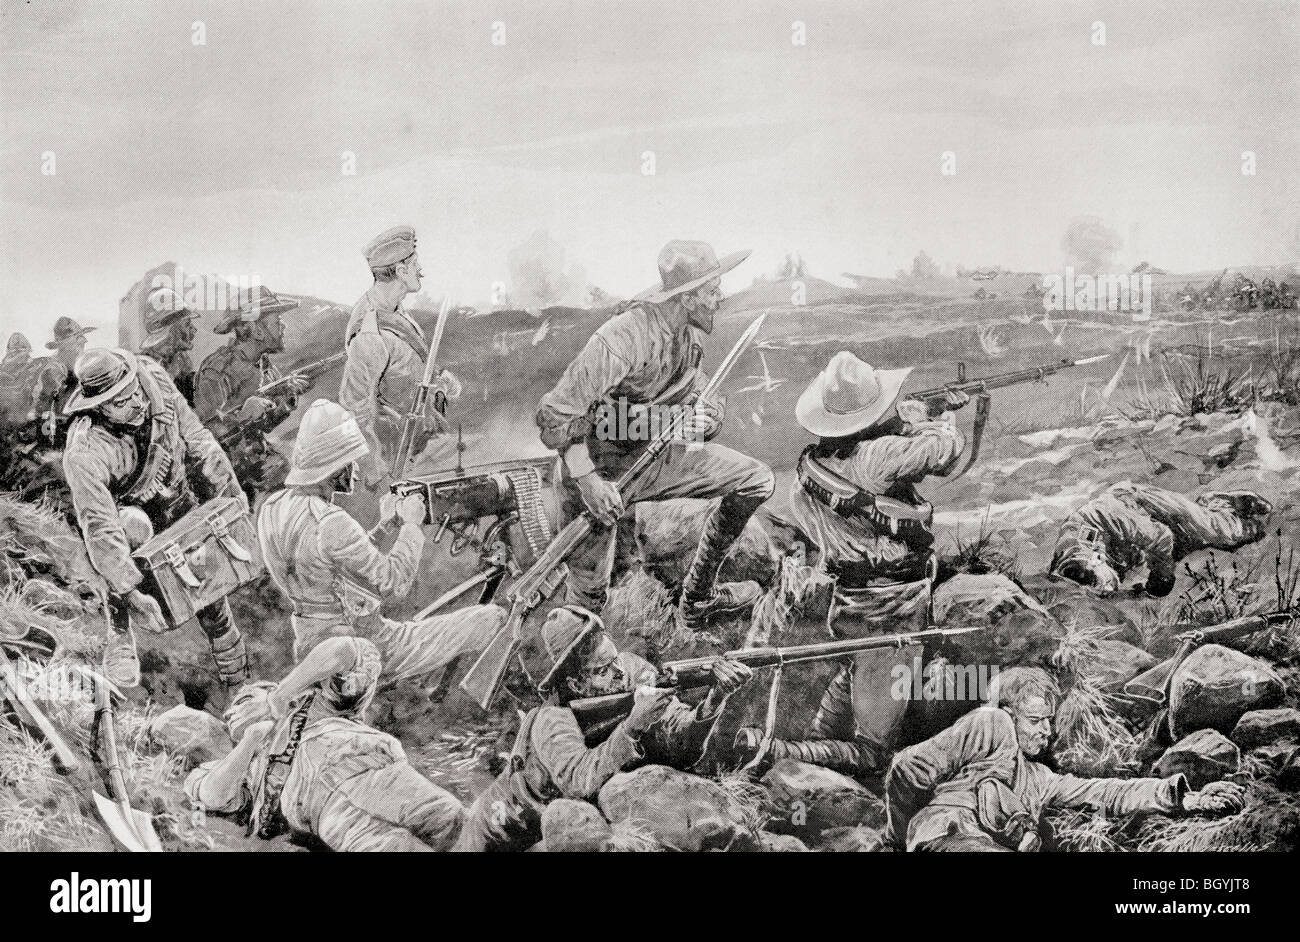 Defenders of Mafeking shooting from the trenches during The Second Boer War. - Stock Image